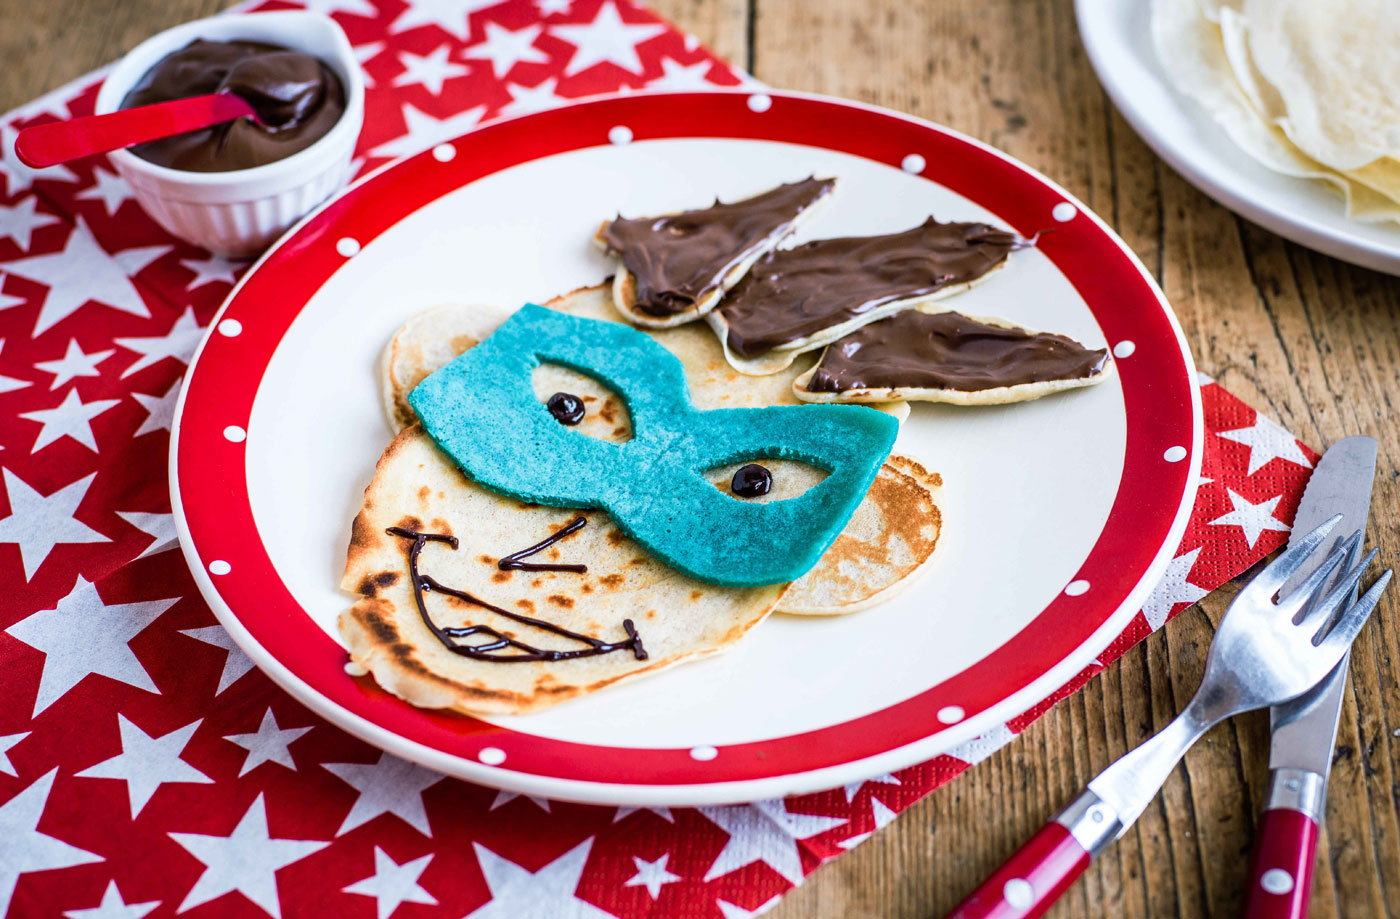 Comic book villain pancake face recipe